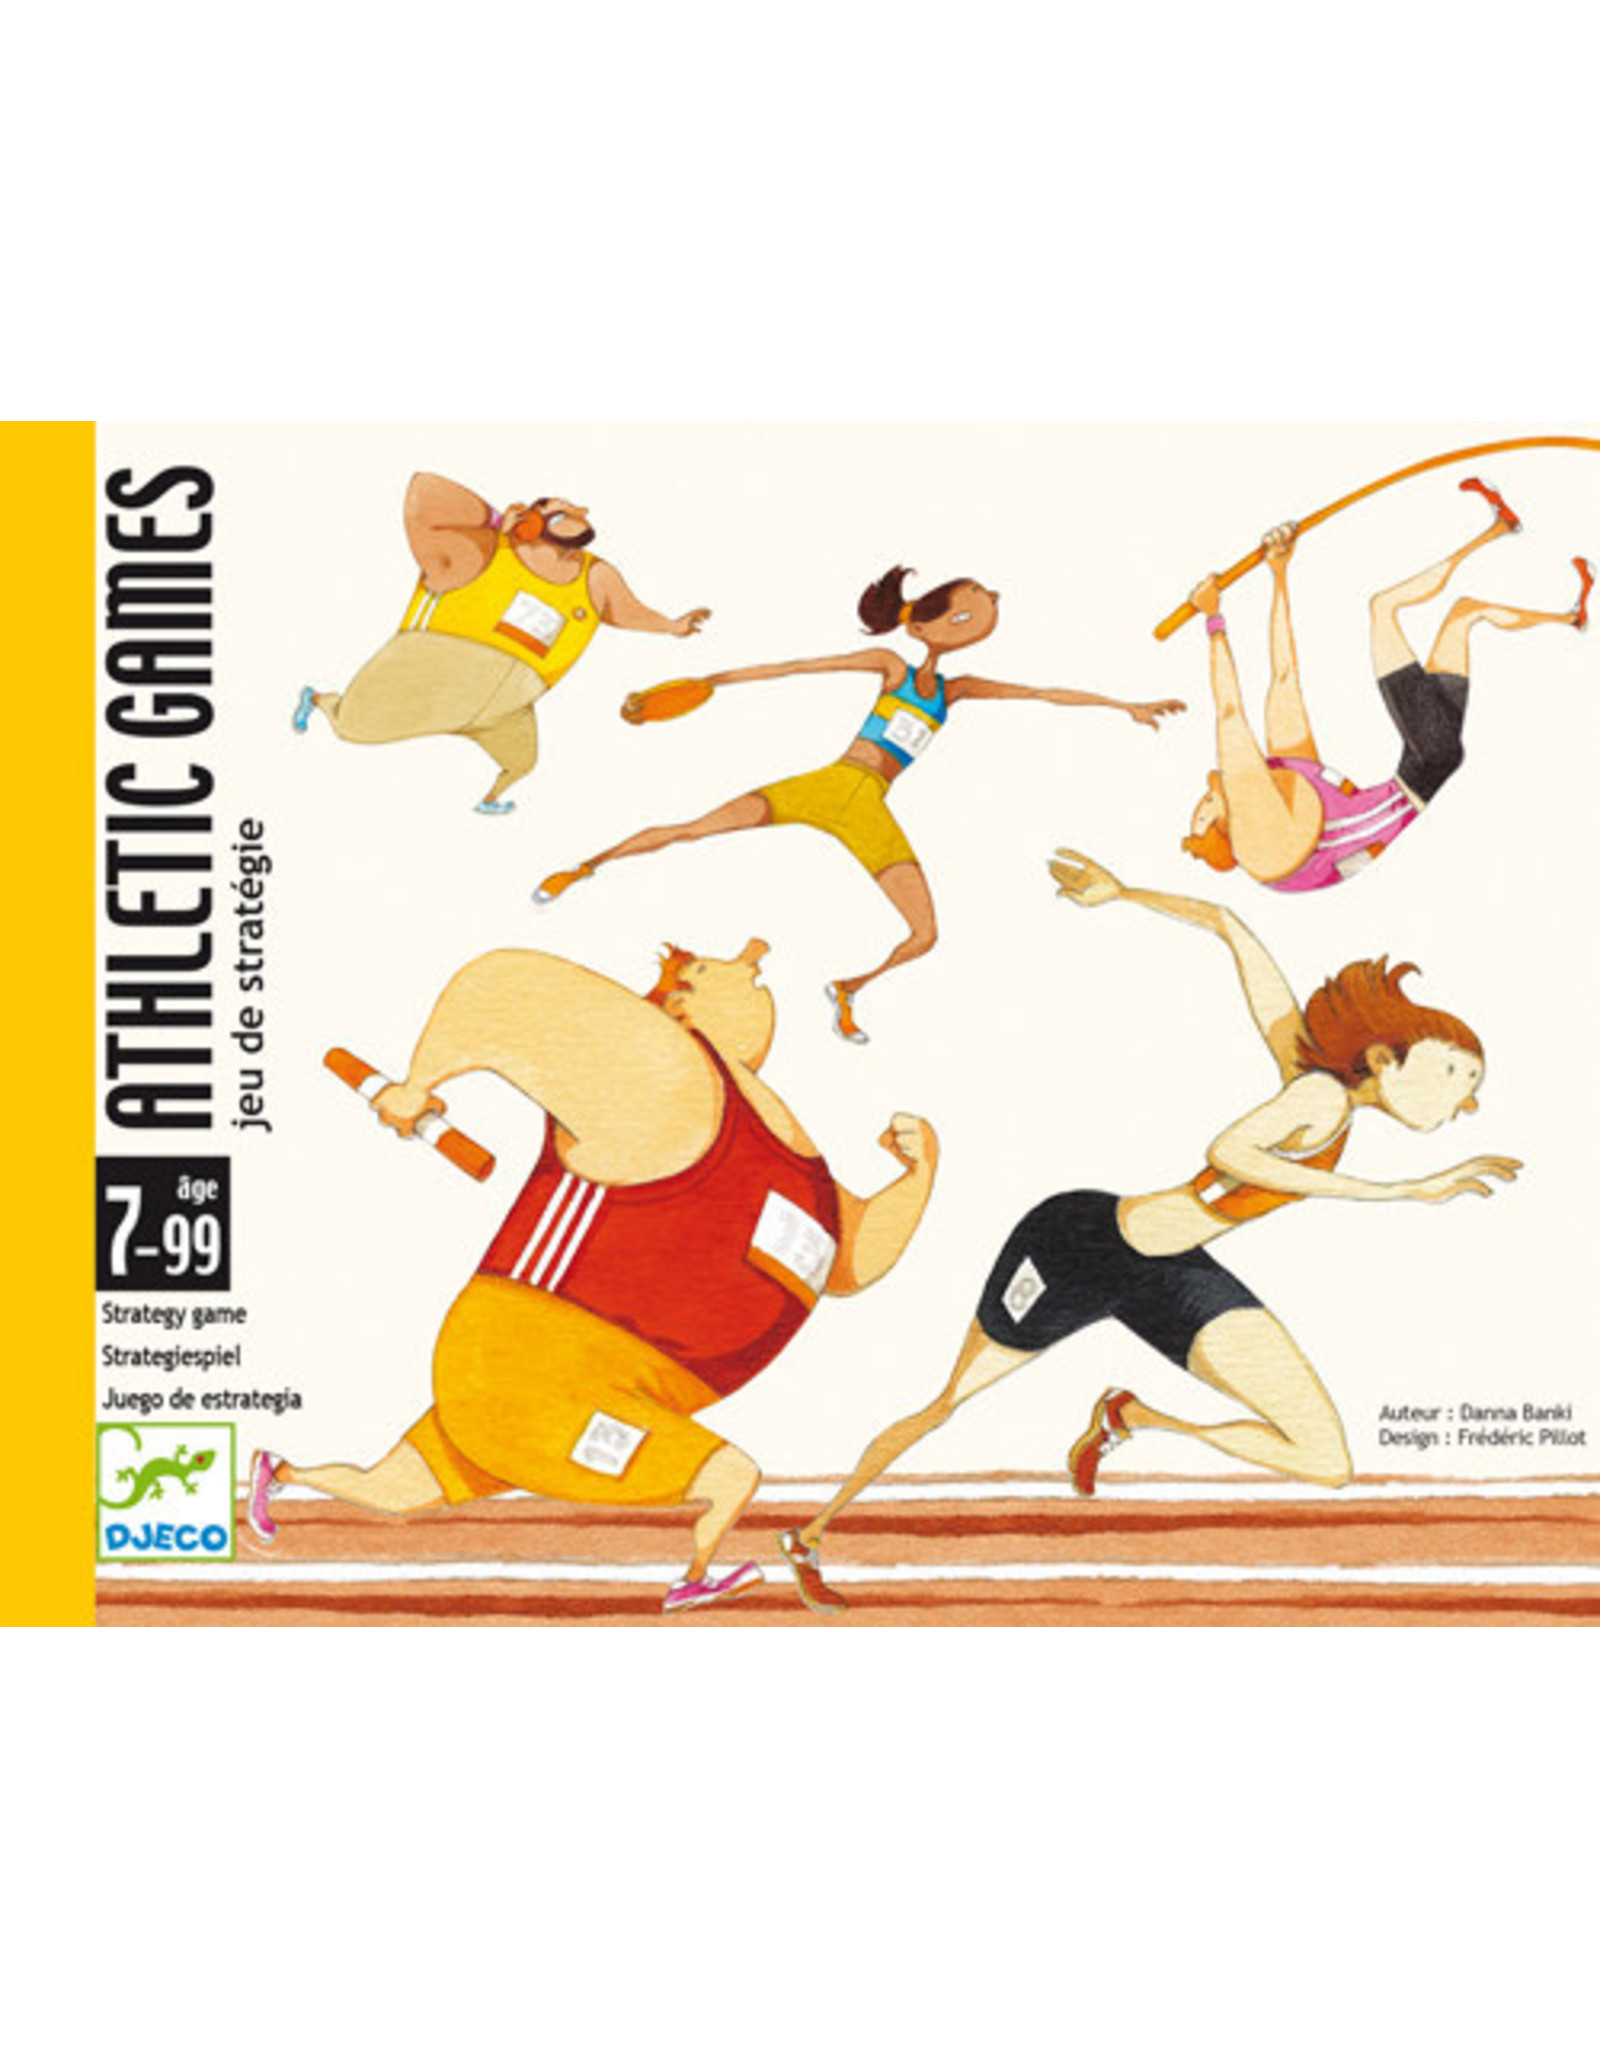 Djeco Athletic Games Card Game